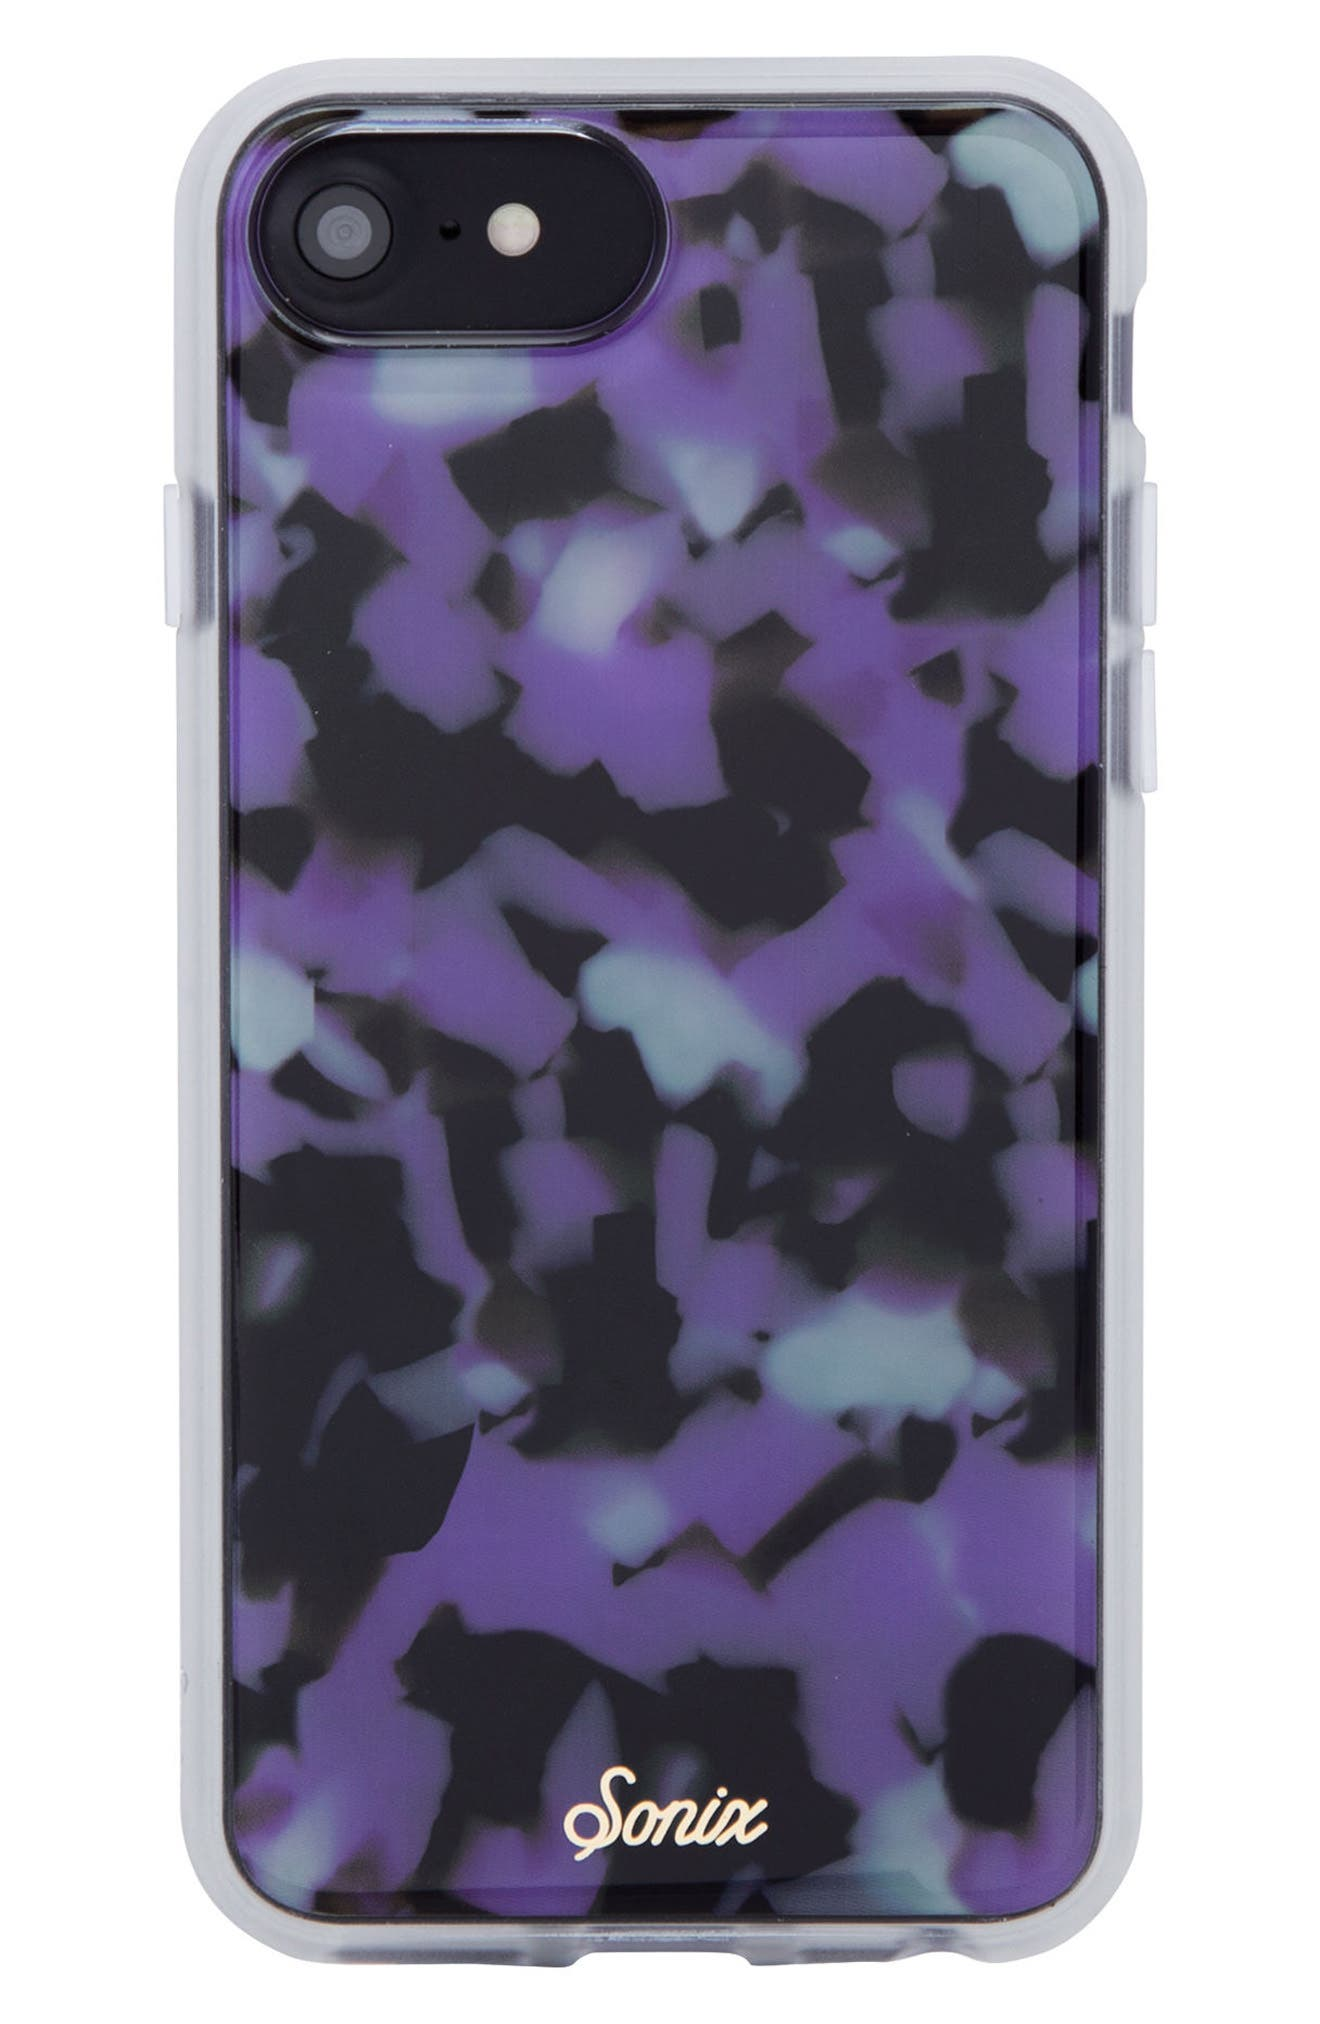 Sonic Terrazzo Lilac iPhone 6/6s/7/8 & 6/6s/7/8 Plus Case,                             Main thumbnail 1, color,                             LILAC